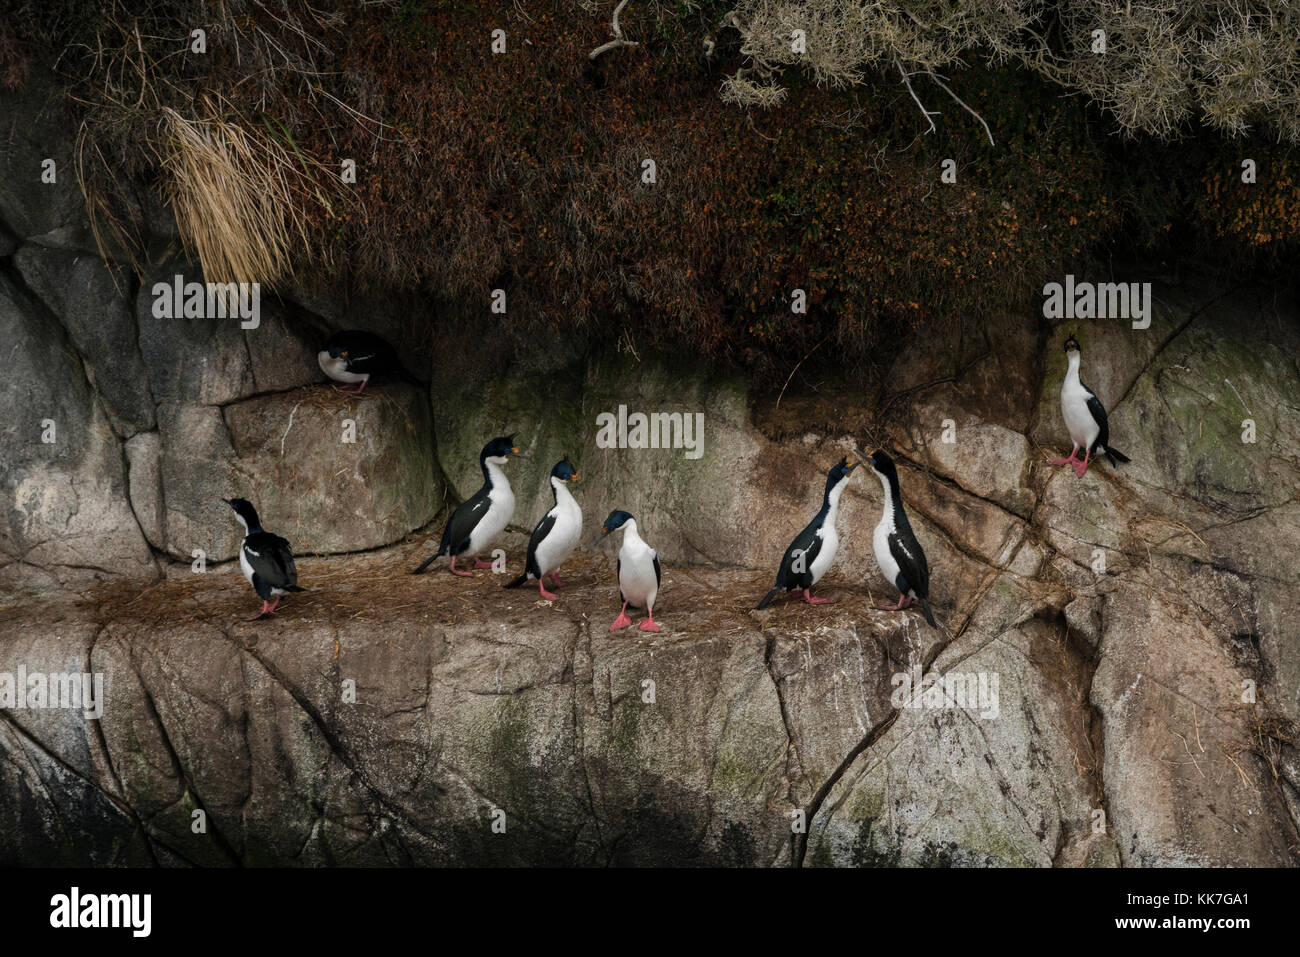 Rock Cormorant (Phalacrocorax magellanicus) nesting on a remote island in the southern Chilean fjords - Stock Image